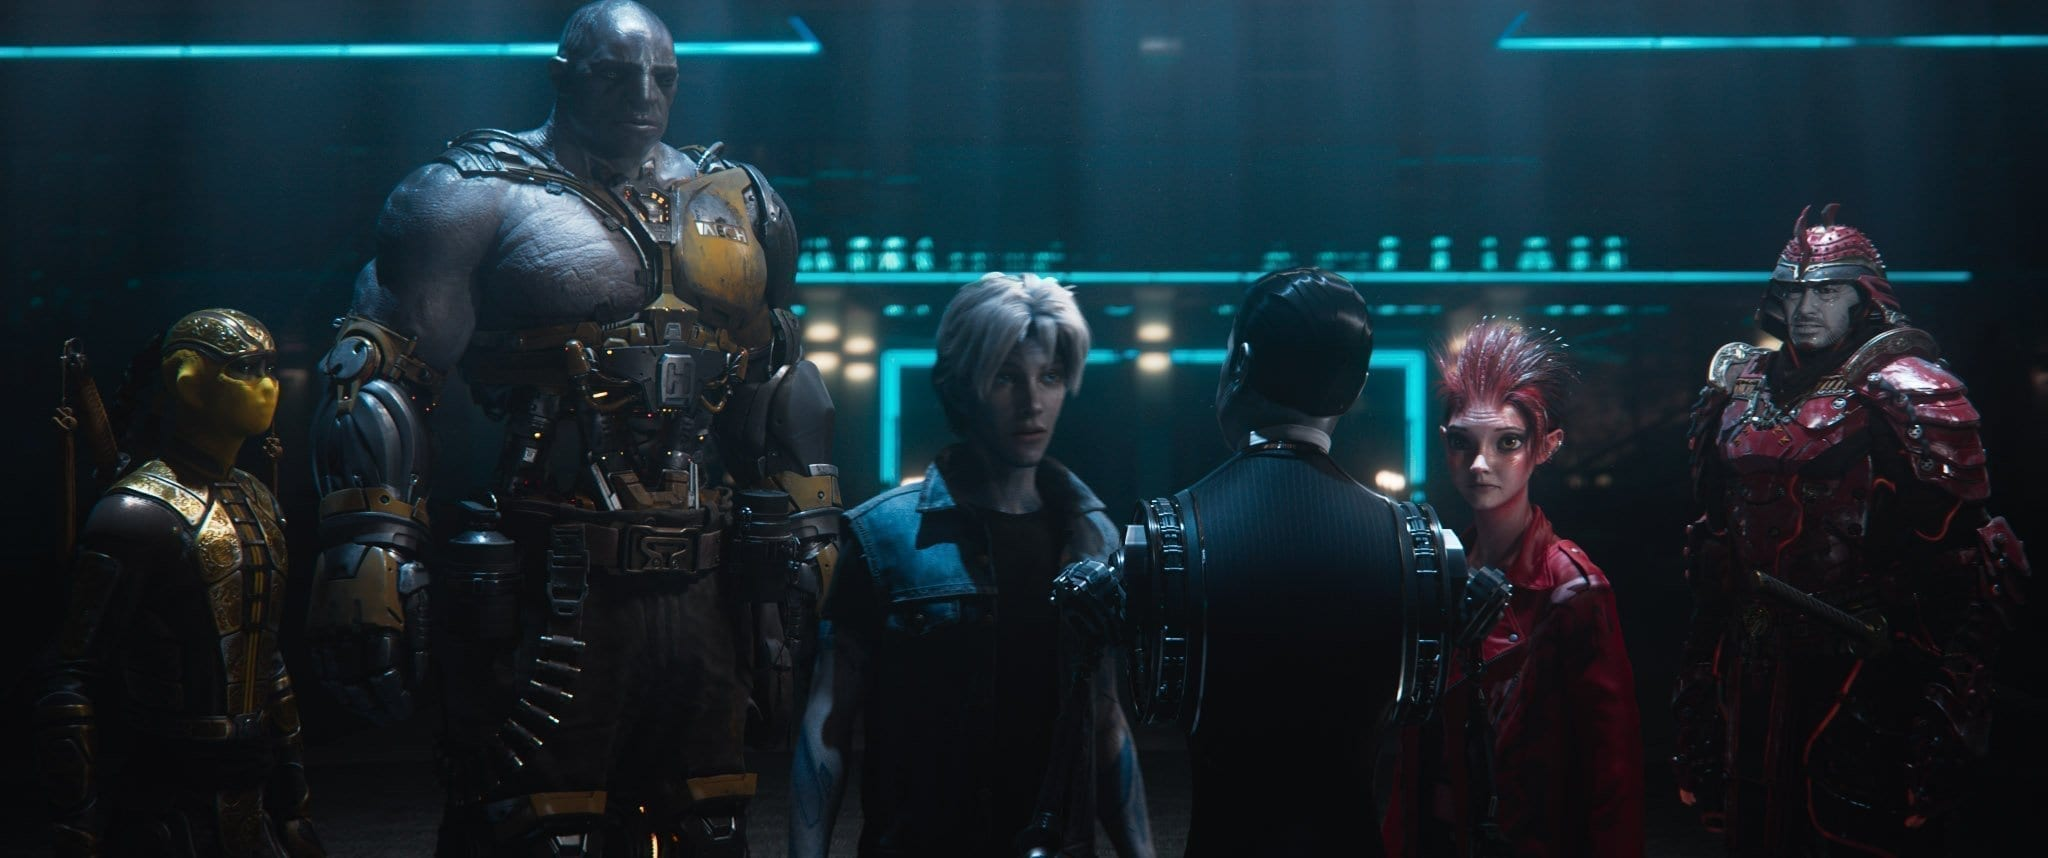 """(L-r) Sho voiced by PHILIP ZHAO, Aech voiced by LENA WAITHE, Parzival voiced by TYE SHERIDAN, the Curator, Art3mis voiced by OLIVIA COOKE and Daito voiced by WIN MORISAKI in Warner Bros. Pictures,' Amblin Entertainment's and Village Roadshow Pictures' science fiction action adventure """"READY PLAYER ONE,"""" a Warner Bros. Pictures release."""